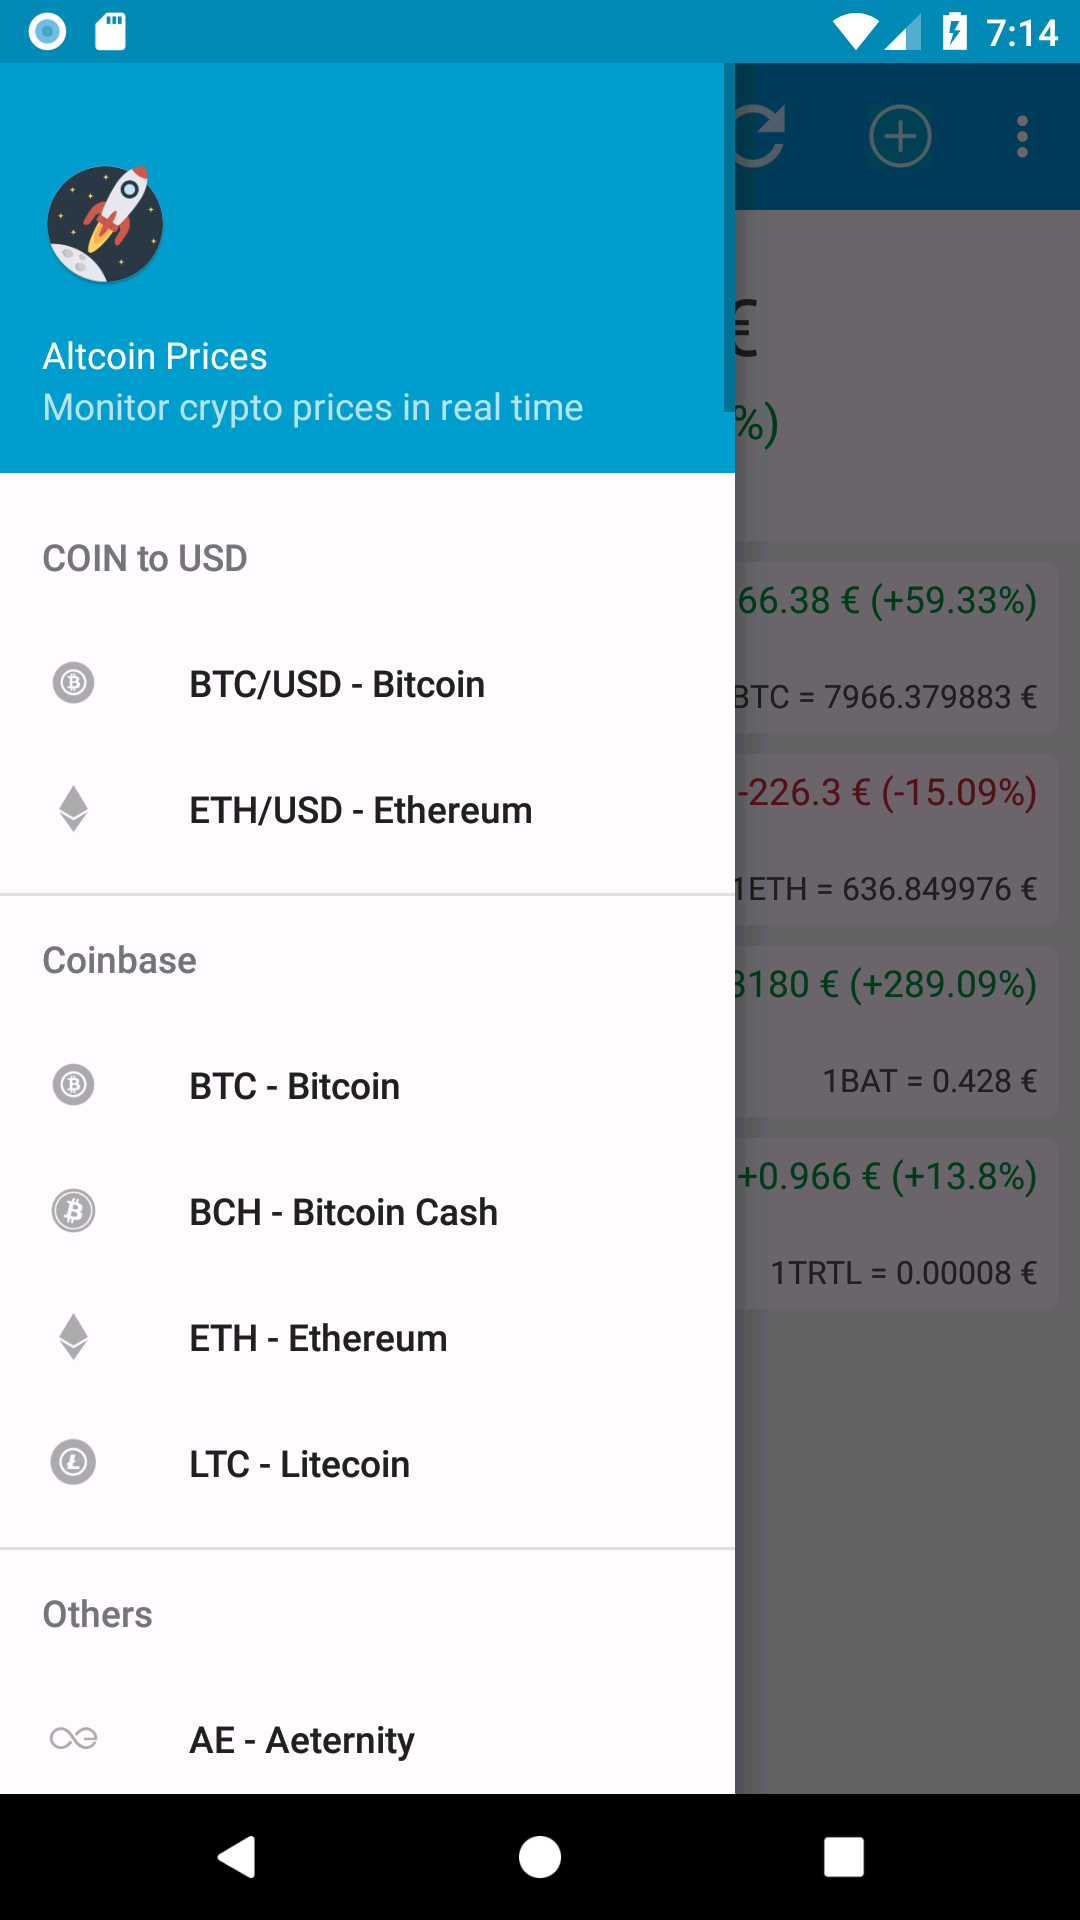 Screenshot of Altcoin Prices